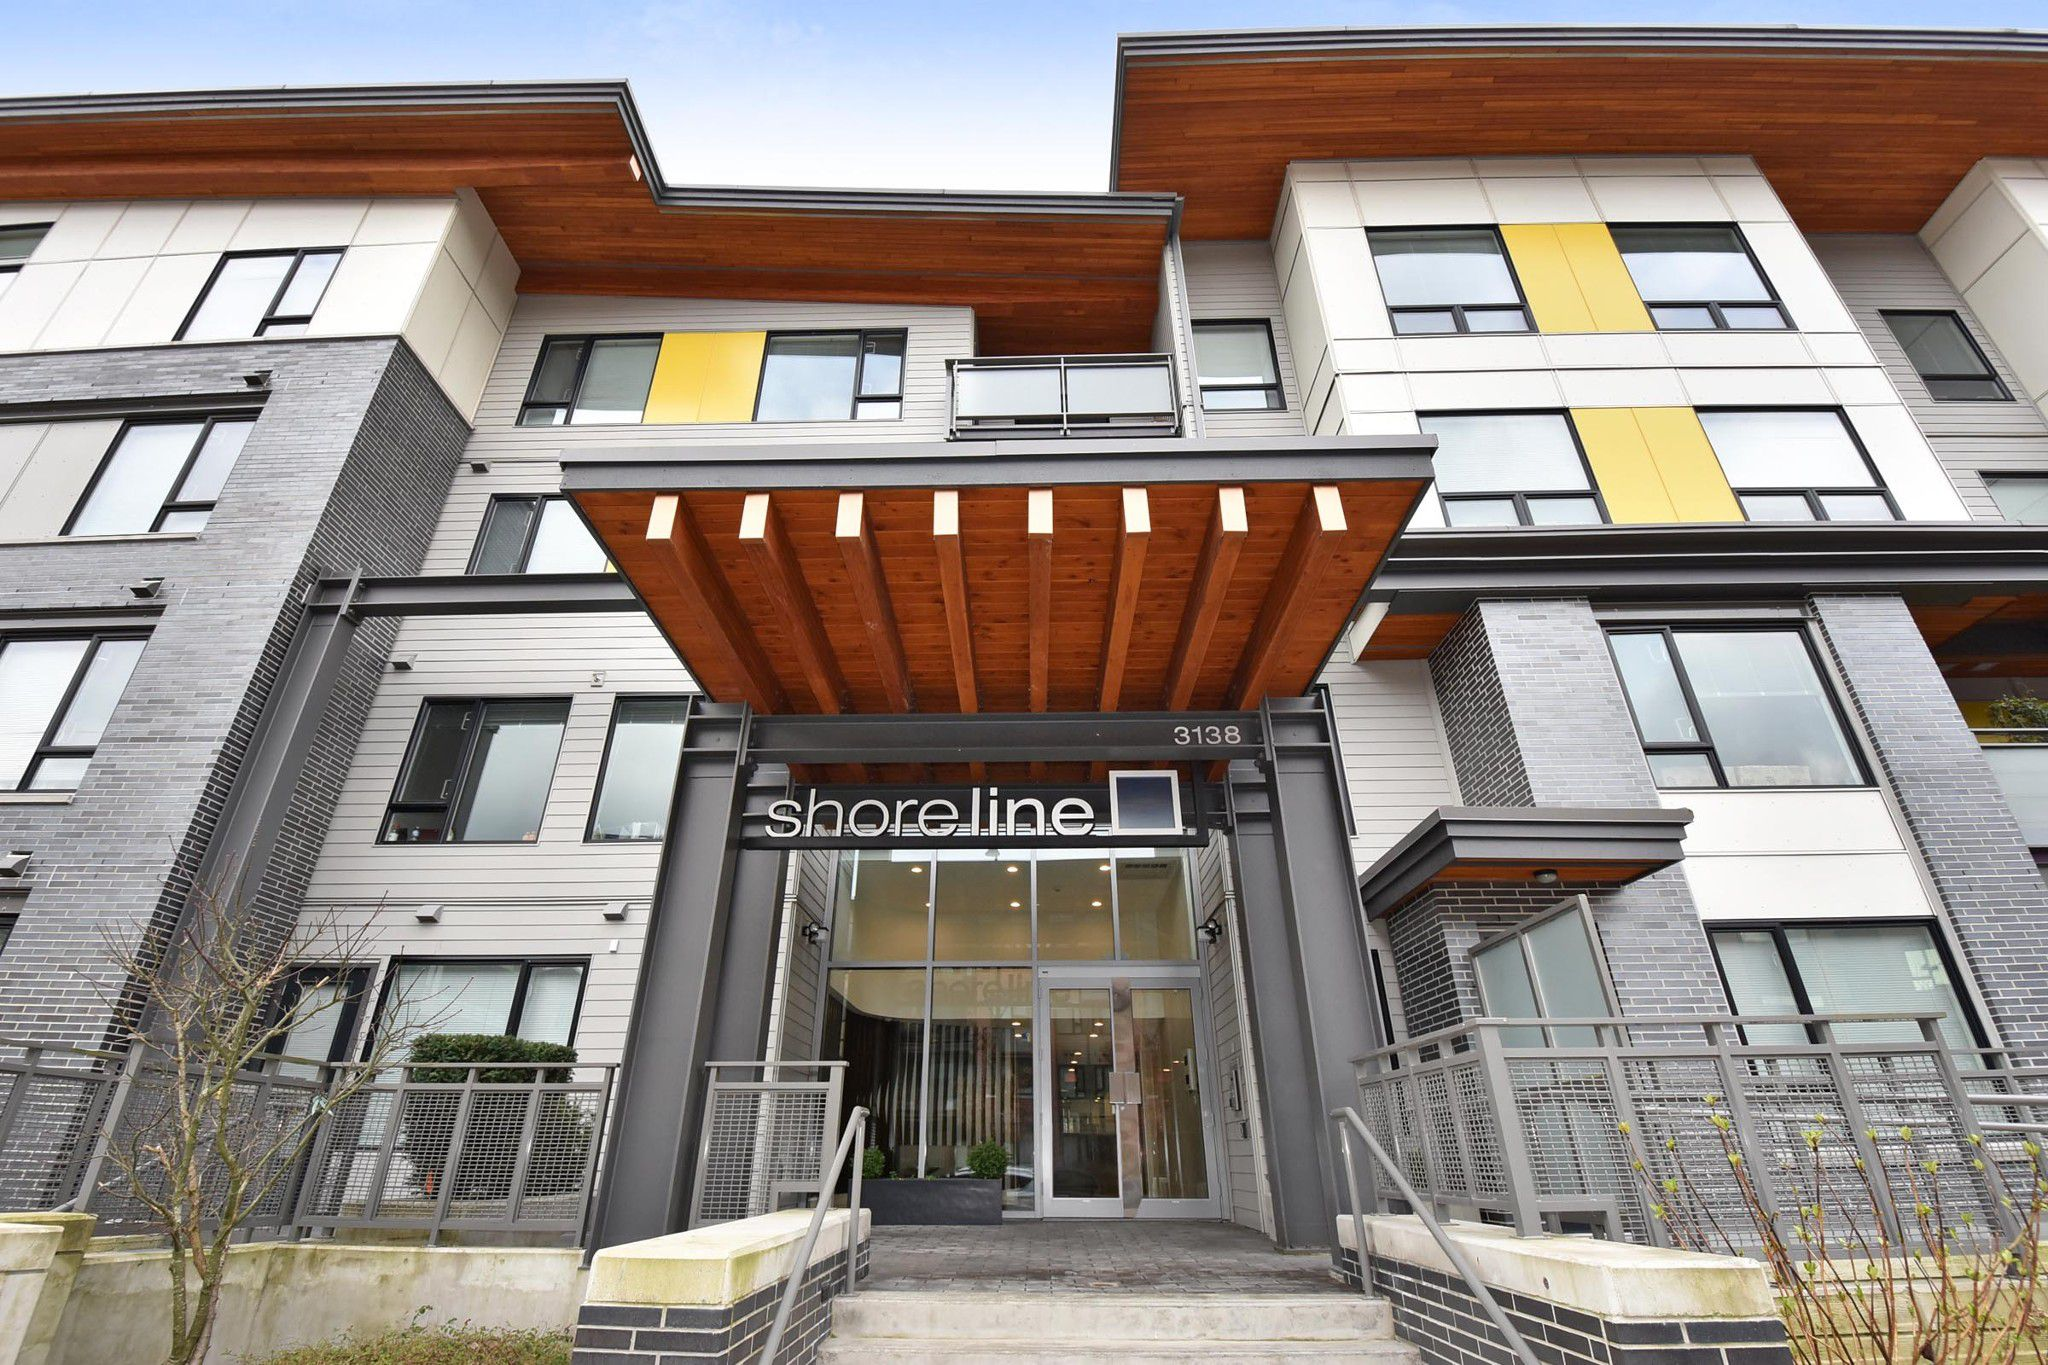 """Main Photo: 317 3138 RIVERWALK Avenue in Vancouver: Champlain Heights Condo for sale in """"SHORELINE"""" (Vancouver East)  : MLS®# R2249741"""